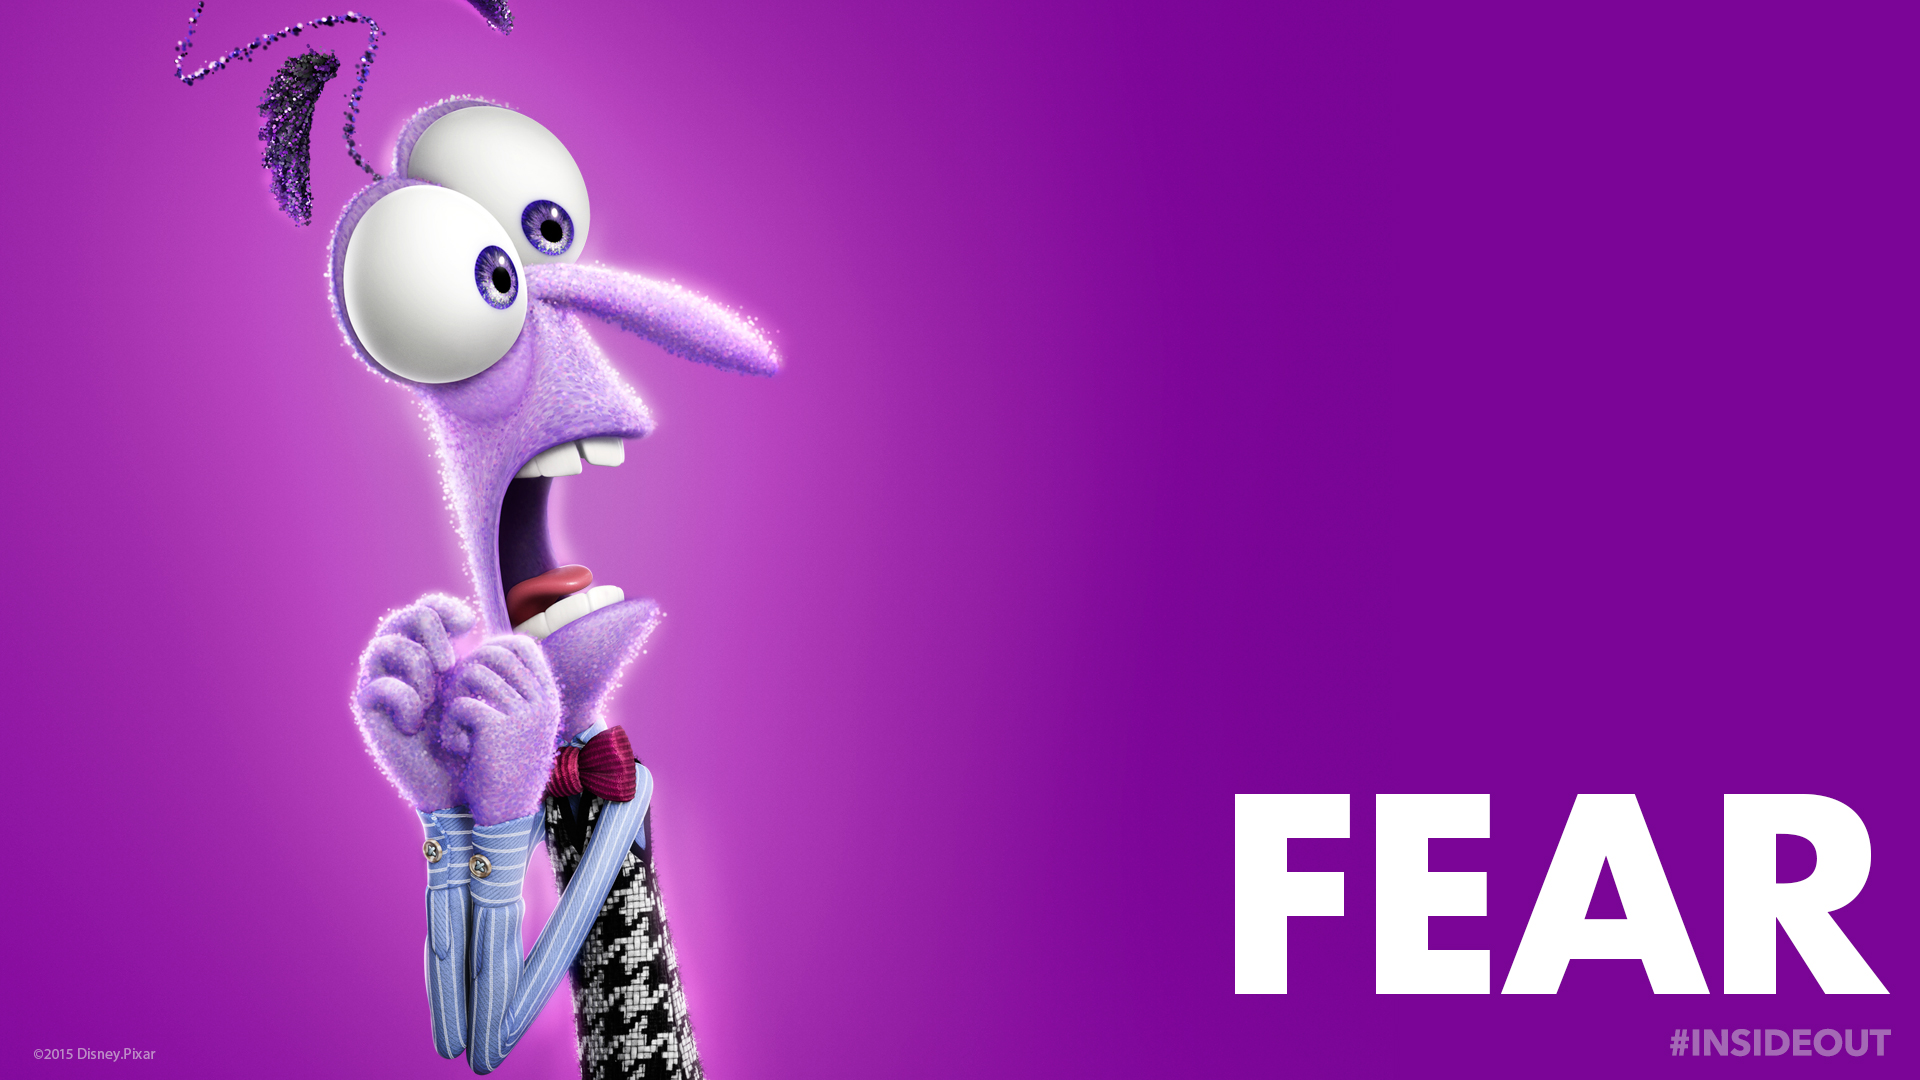 inside out fear wallpaper 48780